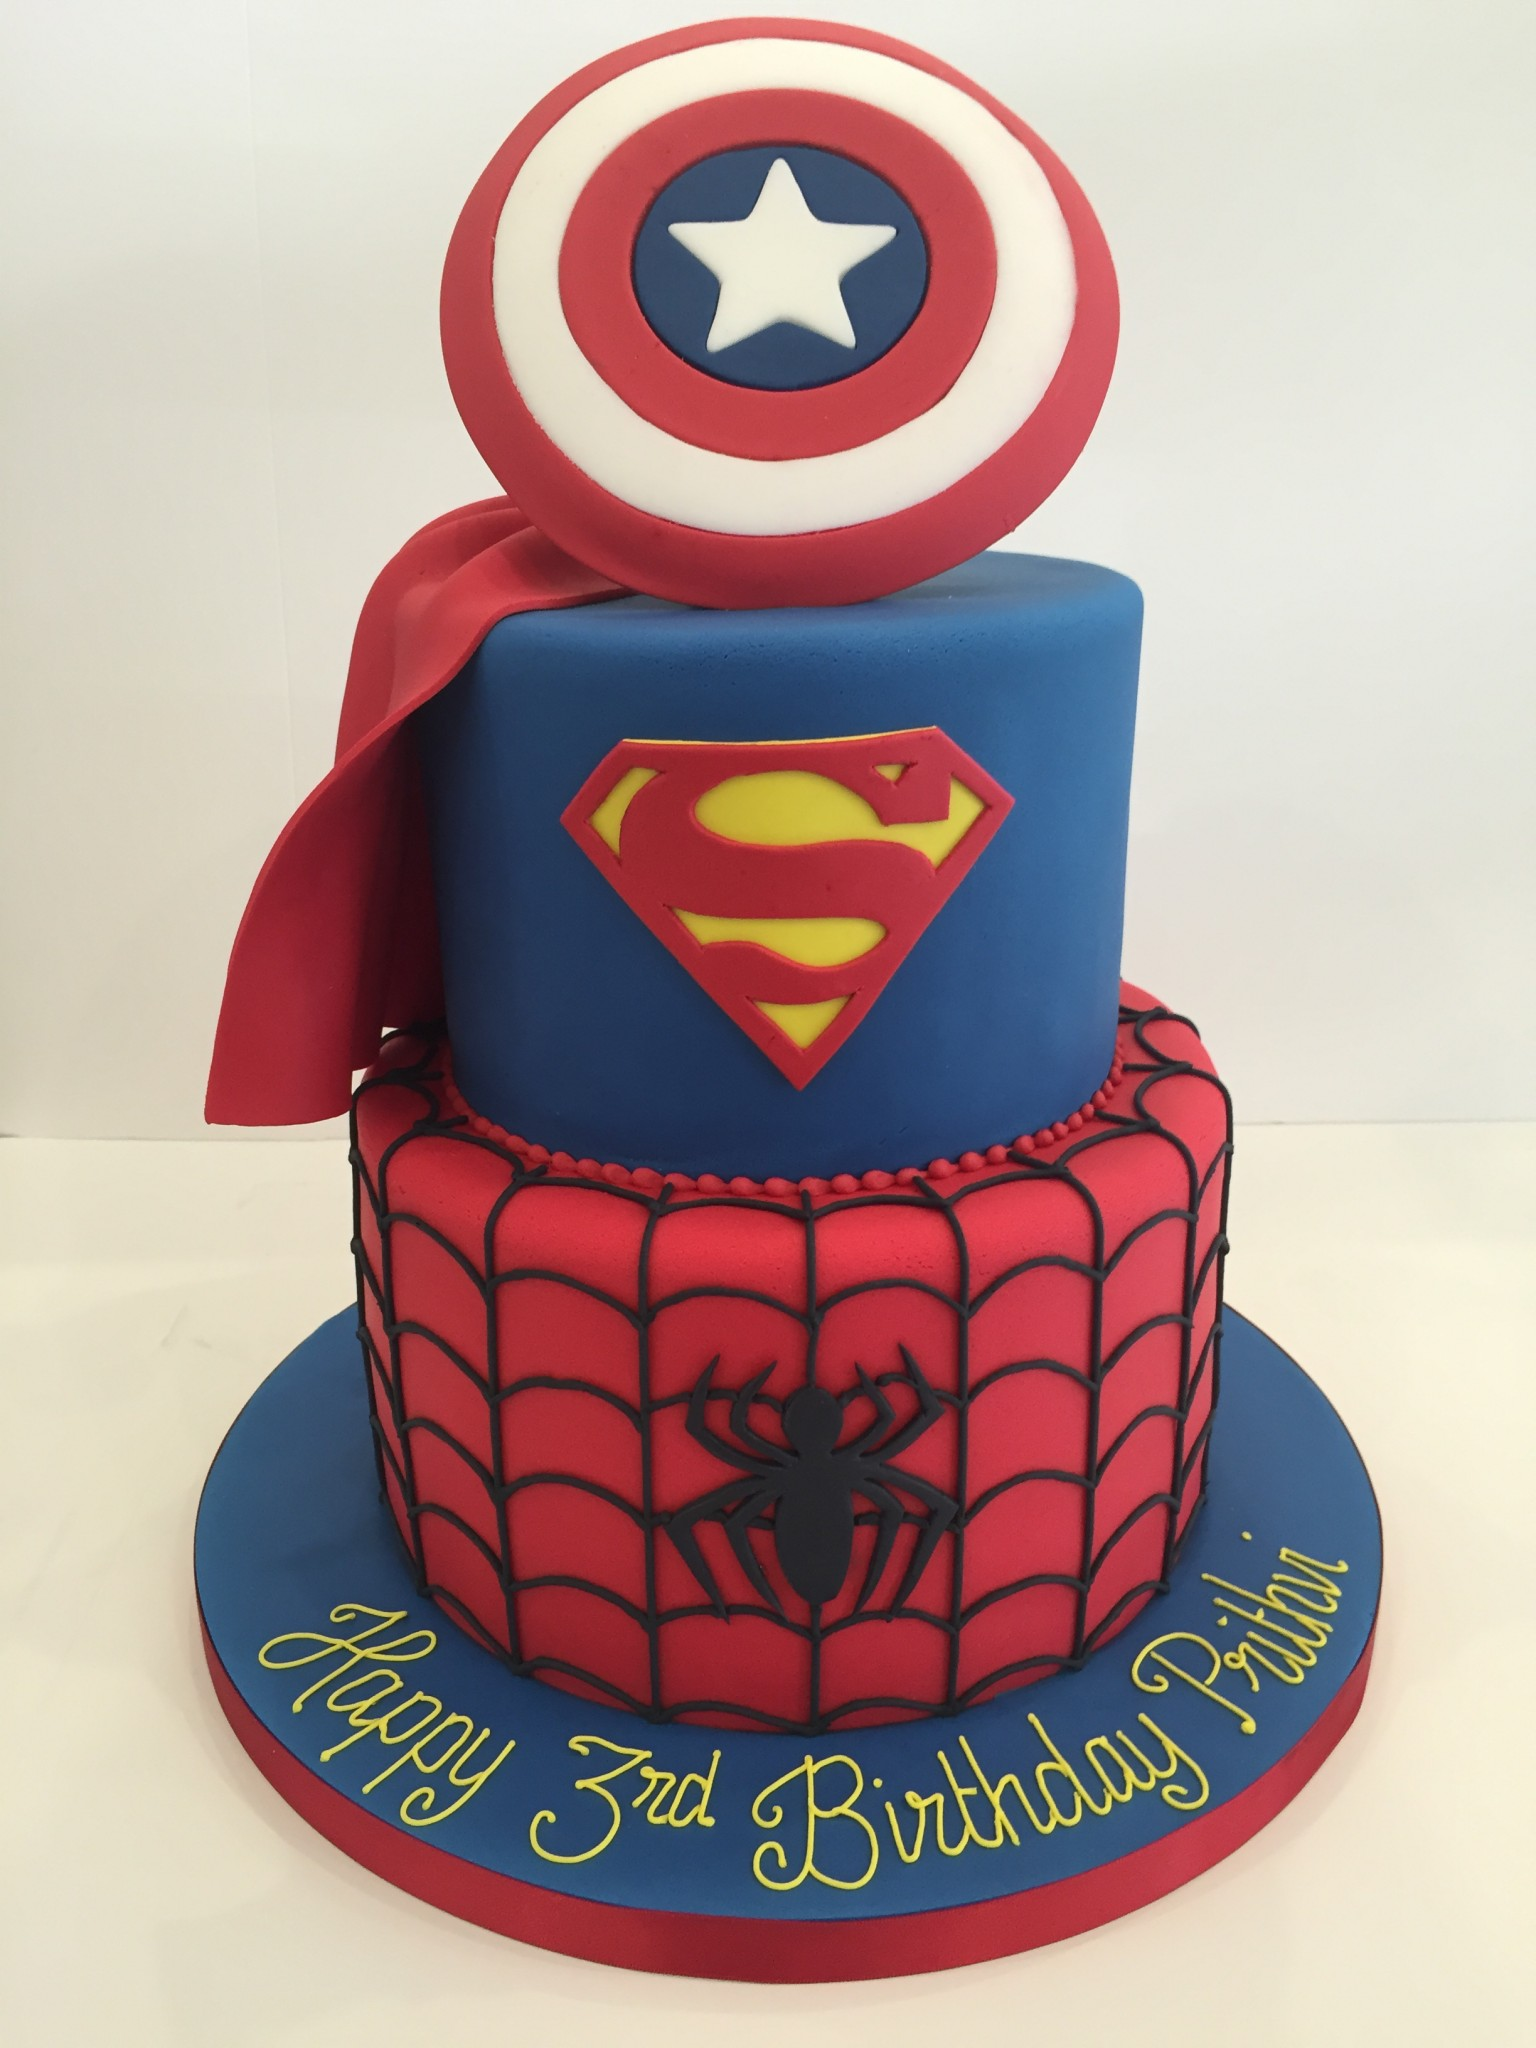 Outstanding Superhero Birthday Cakes Cakes By Robin Personalised Birthday Cards Rectzonderlifede